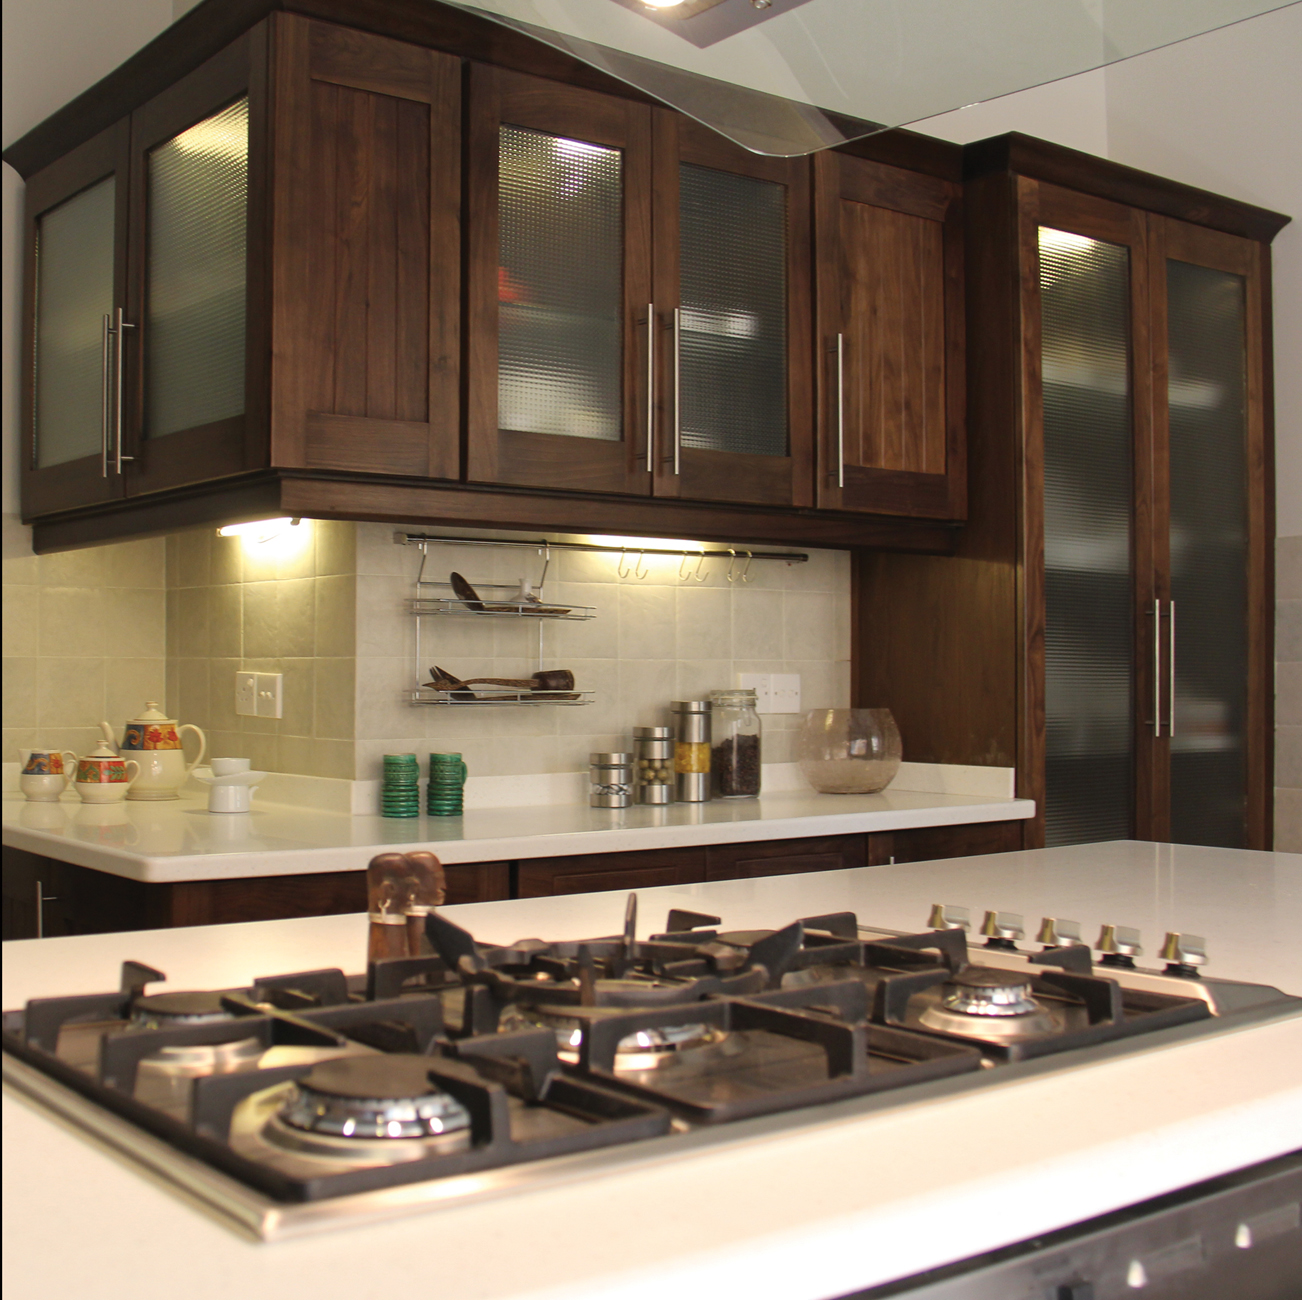 Domestic kitchens details kitchencare for Kitchen cabinets in pakistan